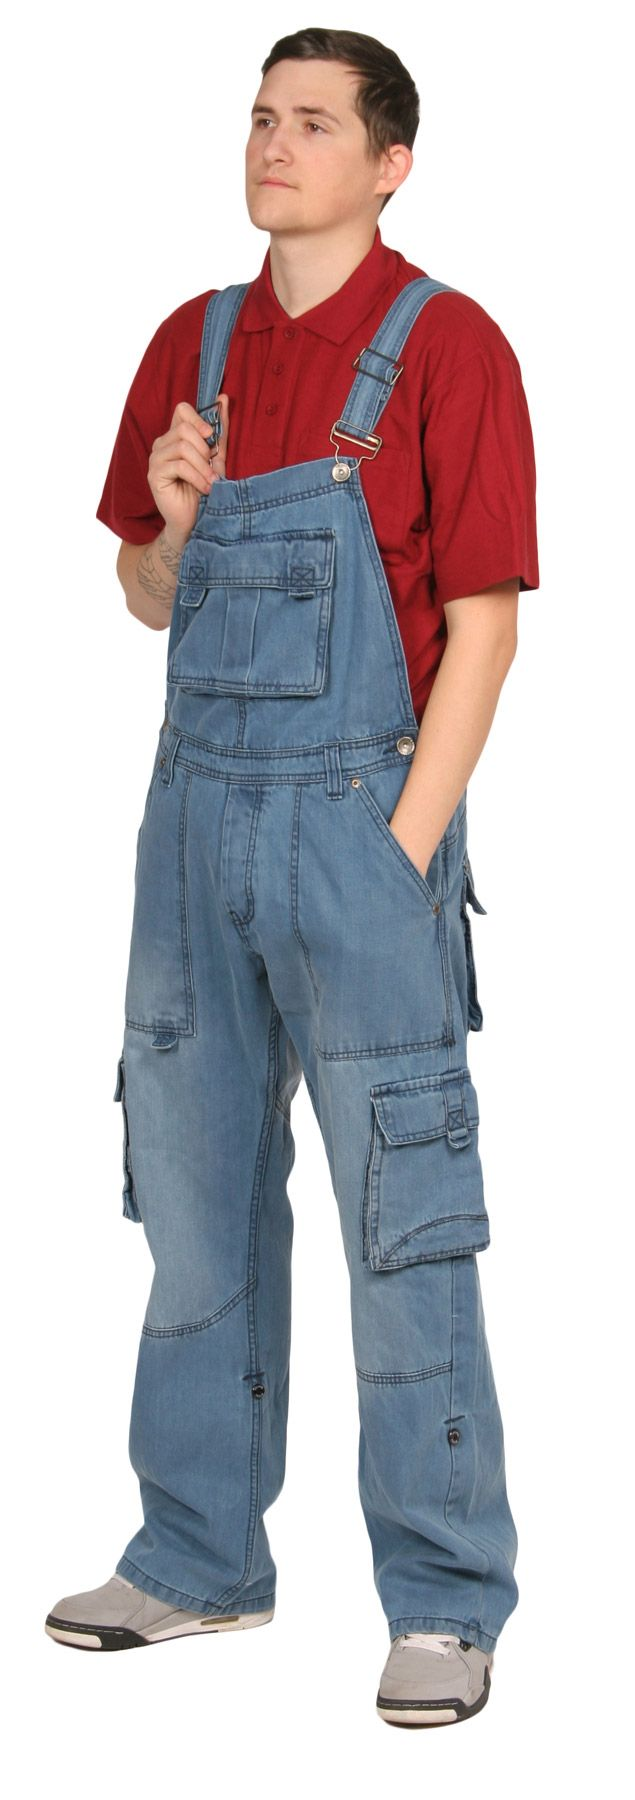 Dickies Kids' Bib Overalls are equipped for outdoor play, a costume party or helping around the house with chores and projects. Our overalls come in a range of sizes - from toddlers to juniors in both denim and duck material.